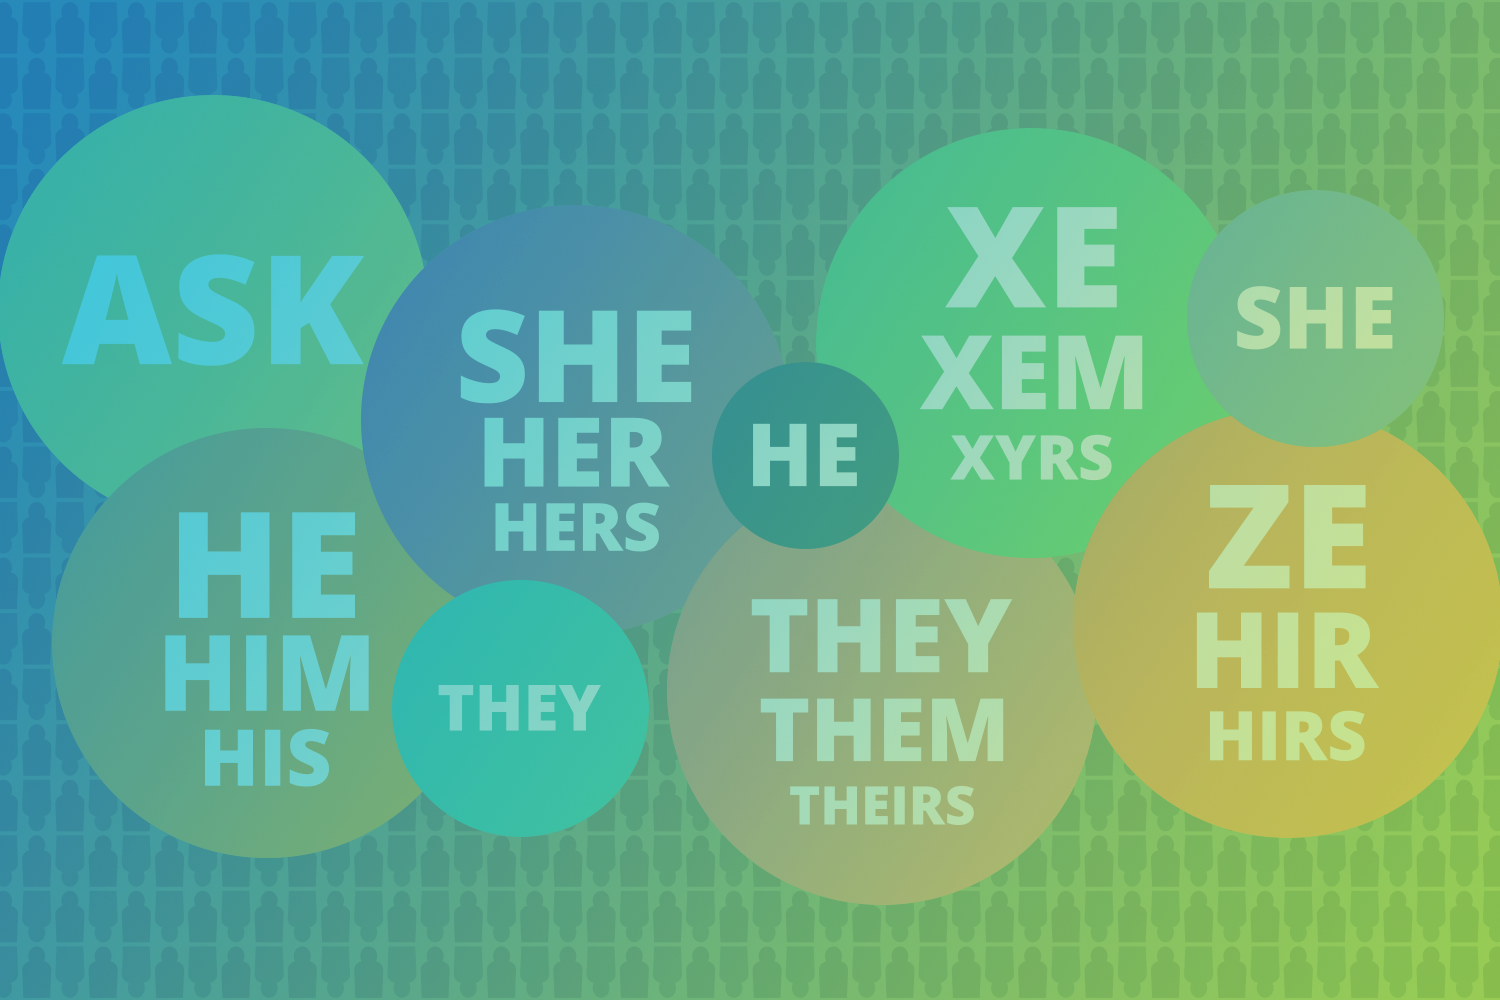 illustration displaying various pronouns used by individuals